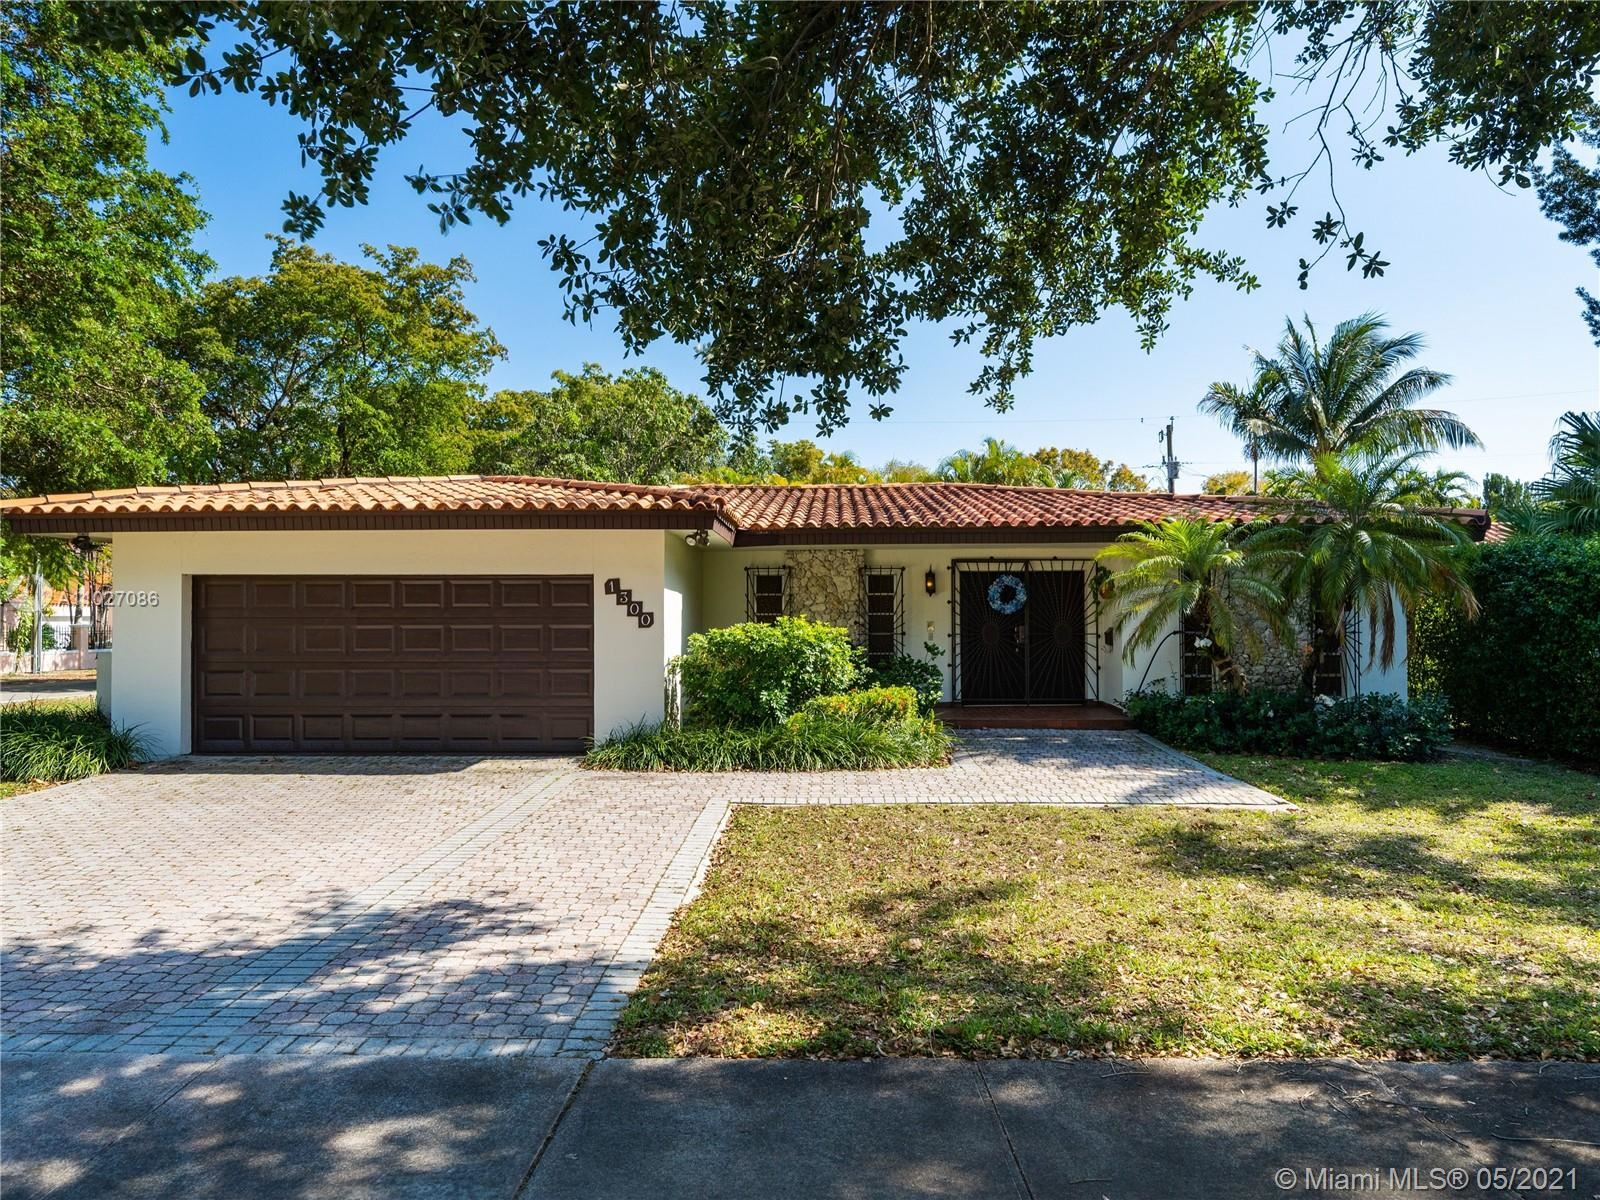 Photo of 1300 Milan Ave, Coral Gables, FL 33134 (MLS # A11027086)